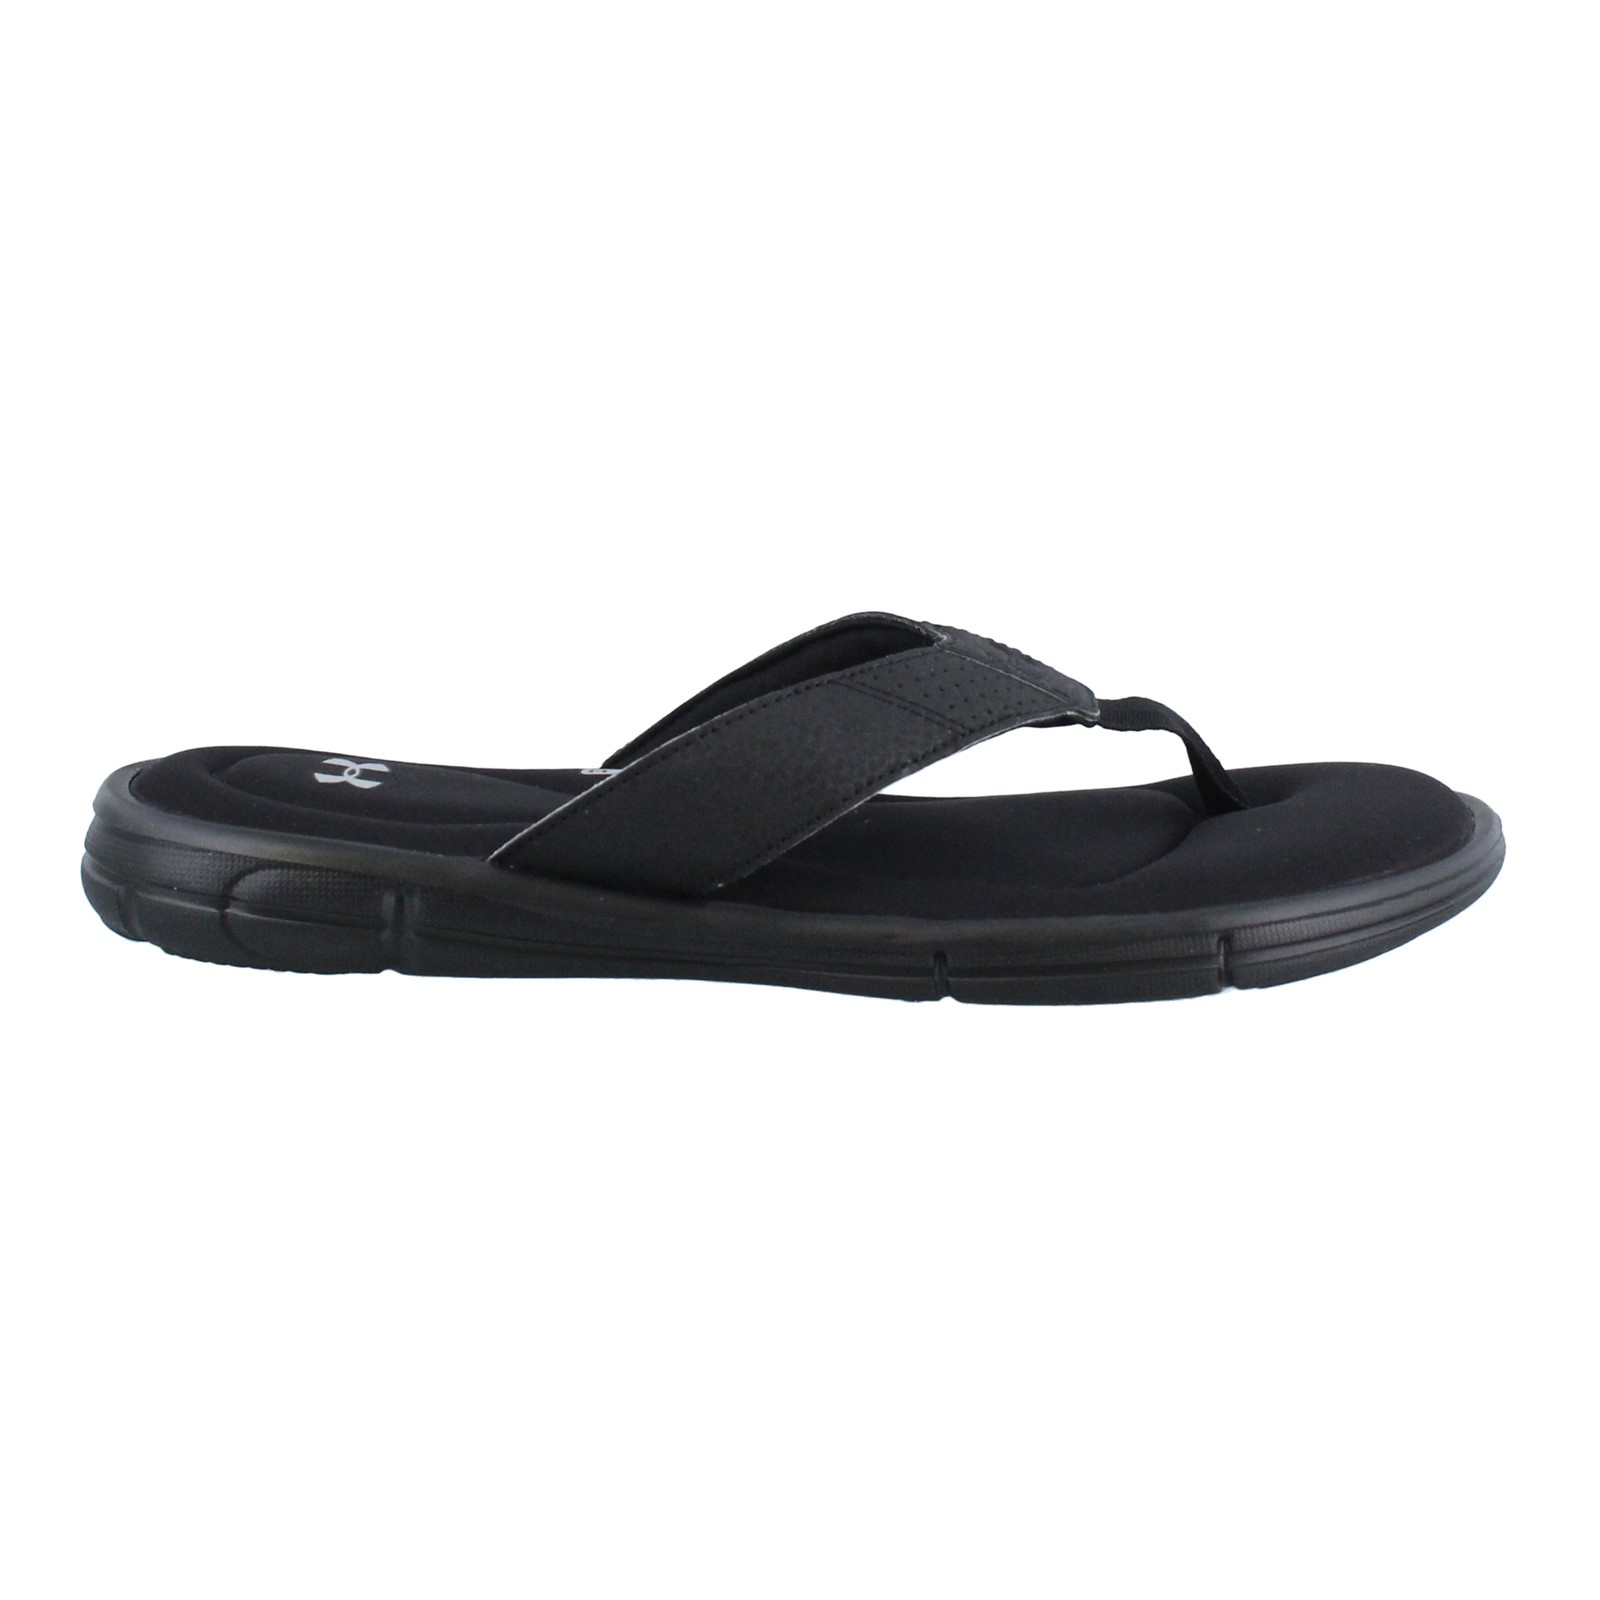 Under Armour, Ignite II Thong Sandals